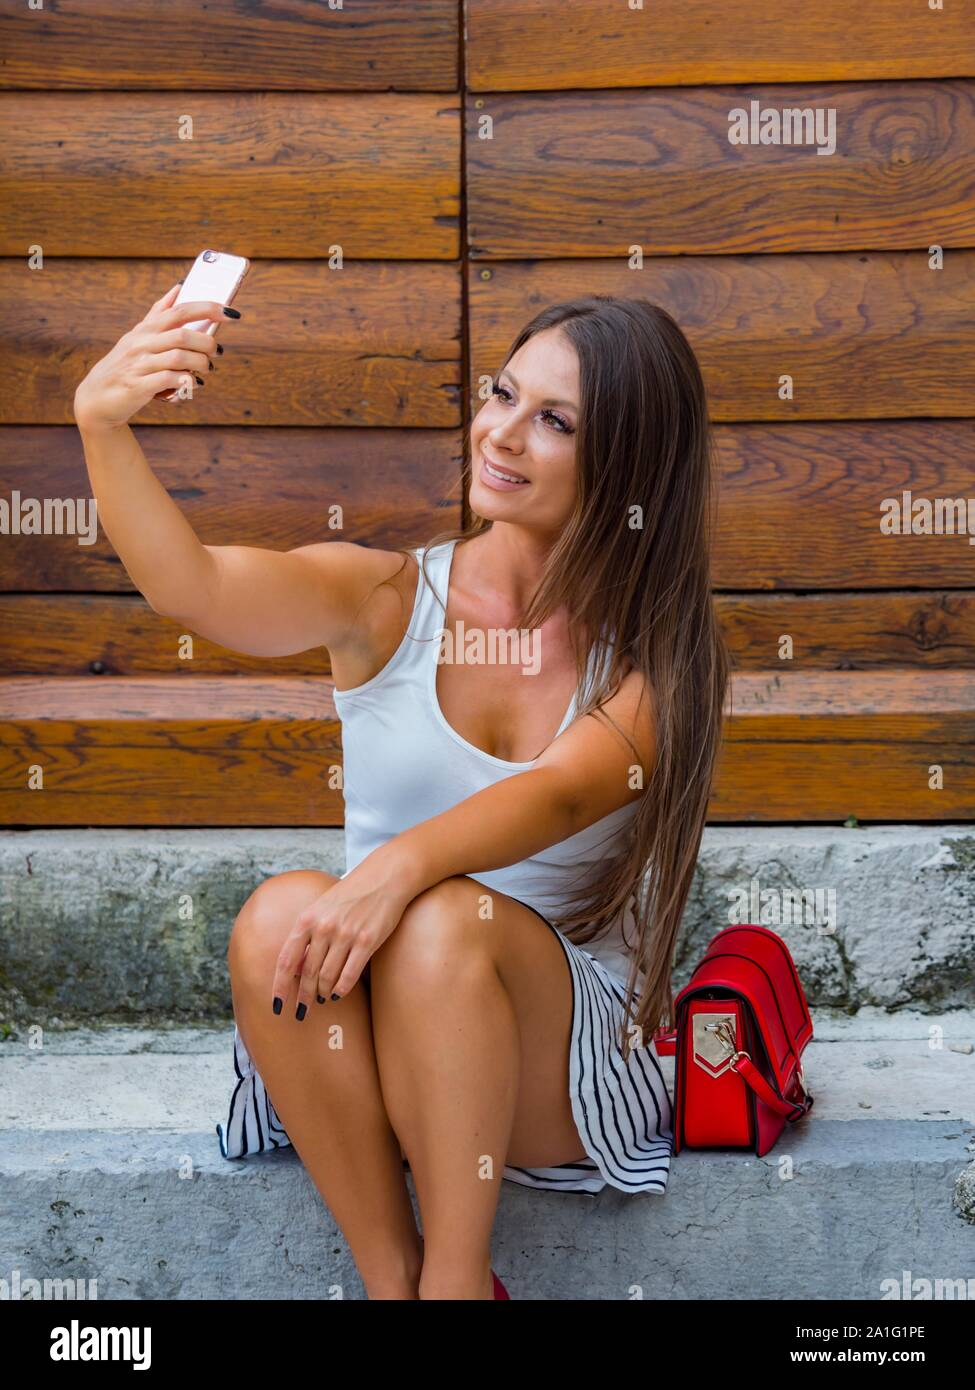 Attractive young woman looking up into camera cellphone sitting on entrance porch doorstep before wooden doors door Stock Photo